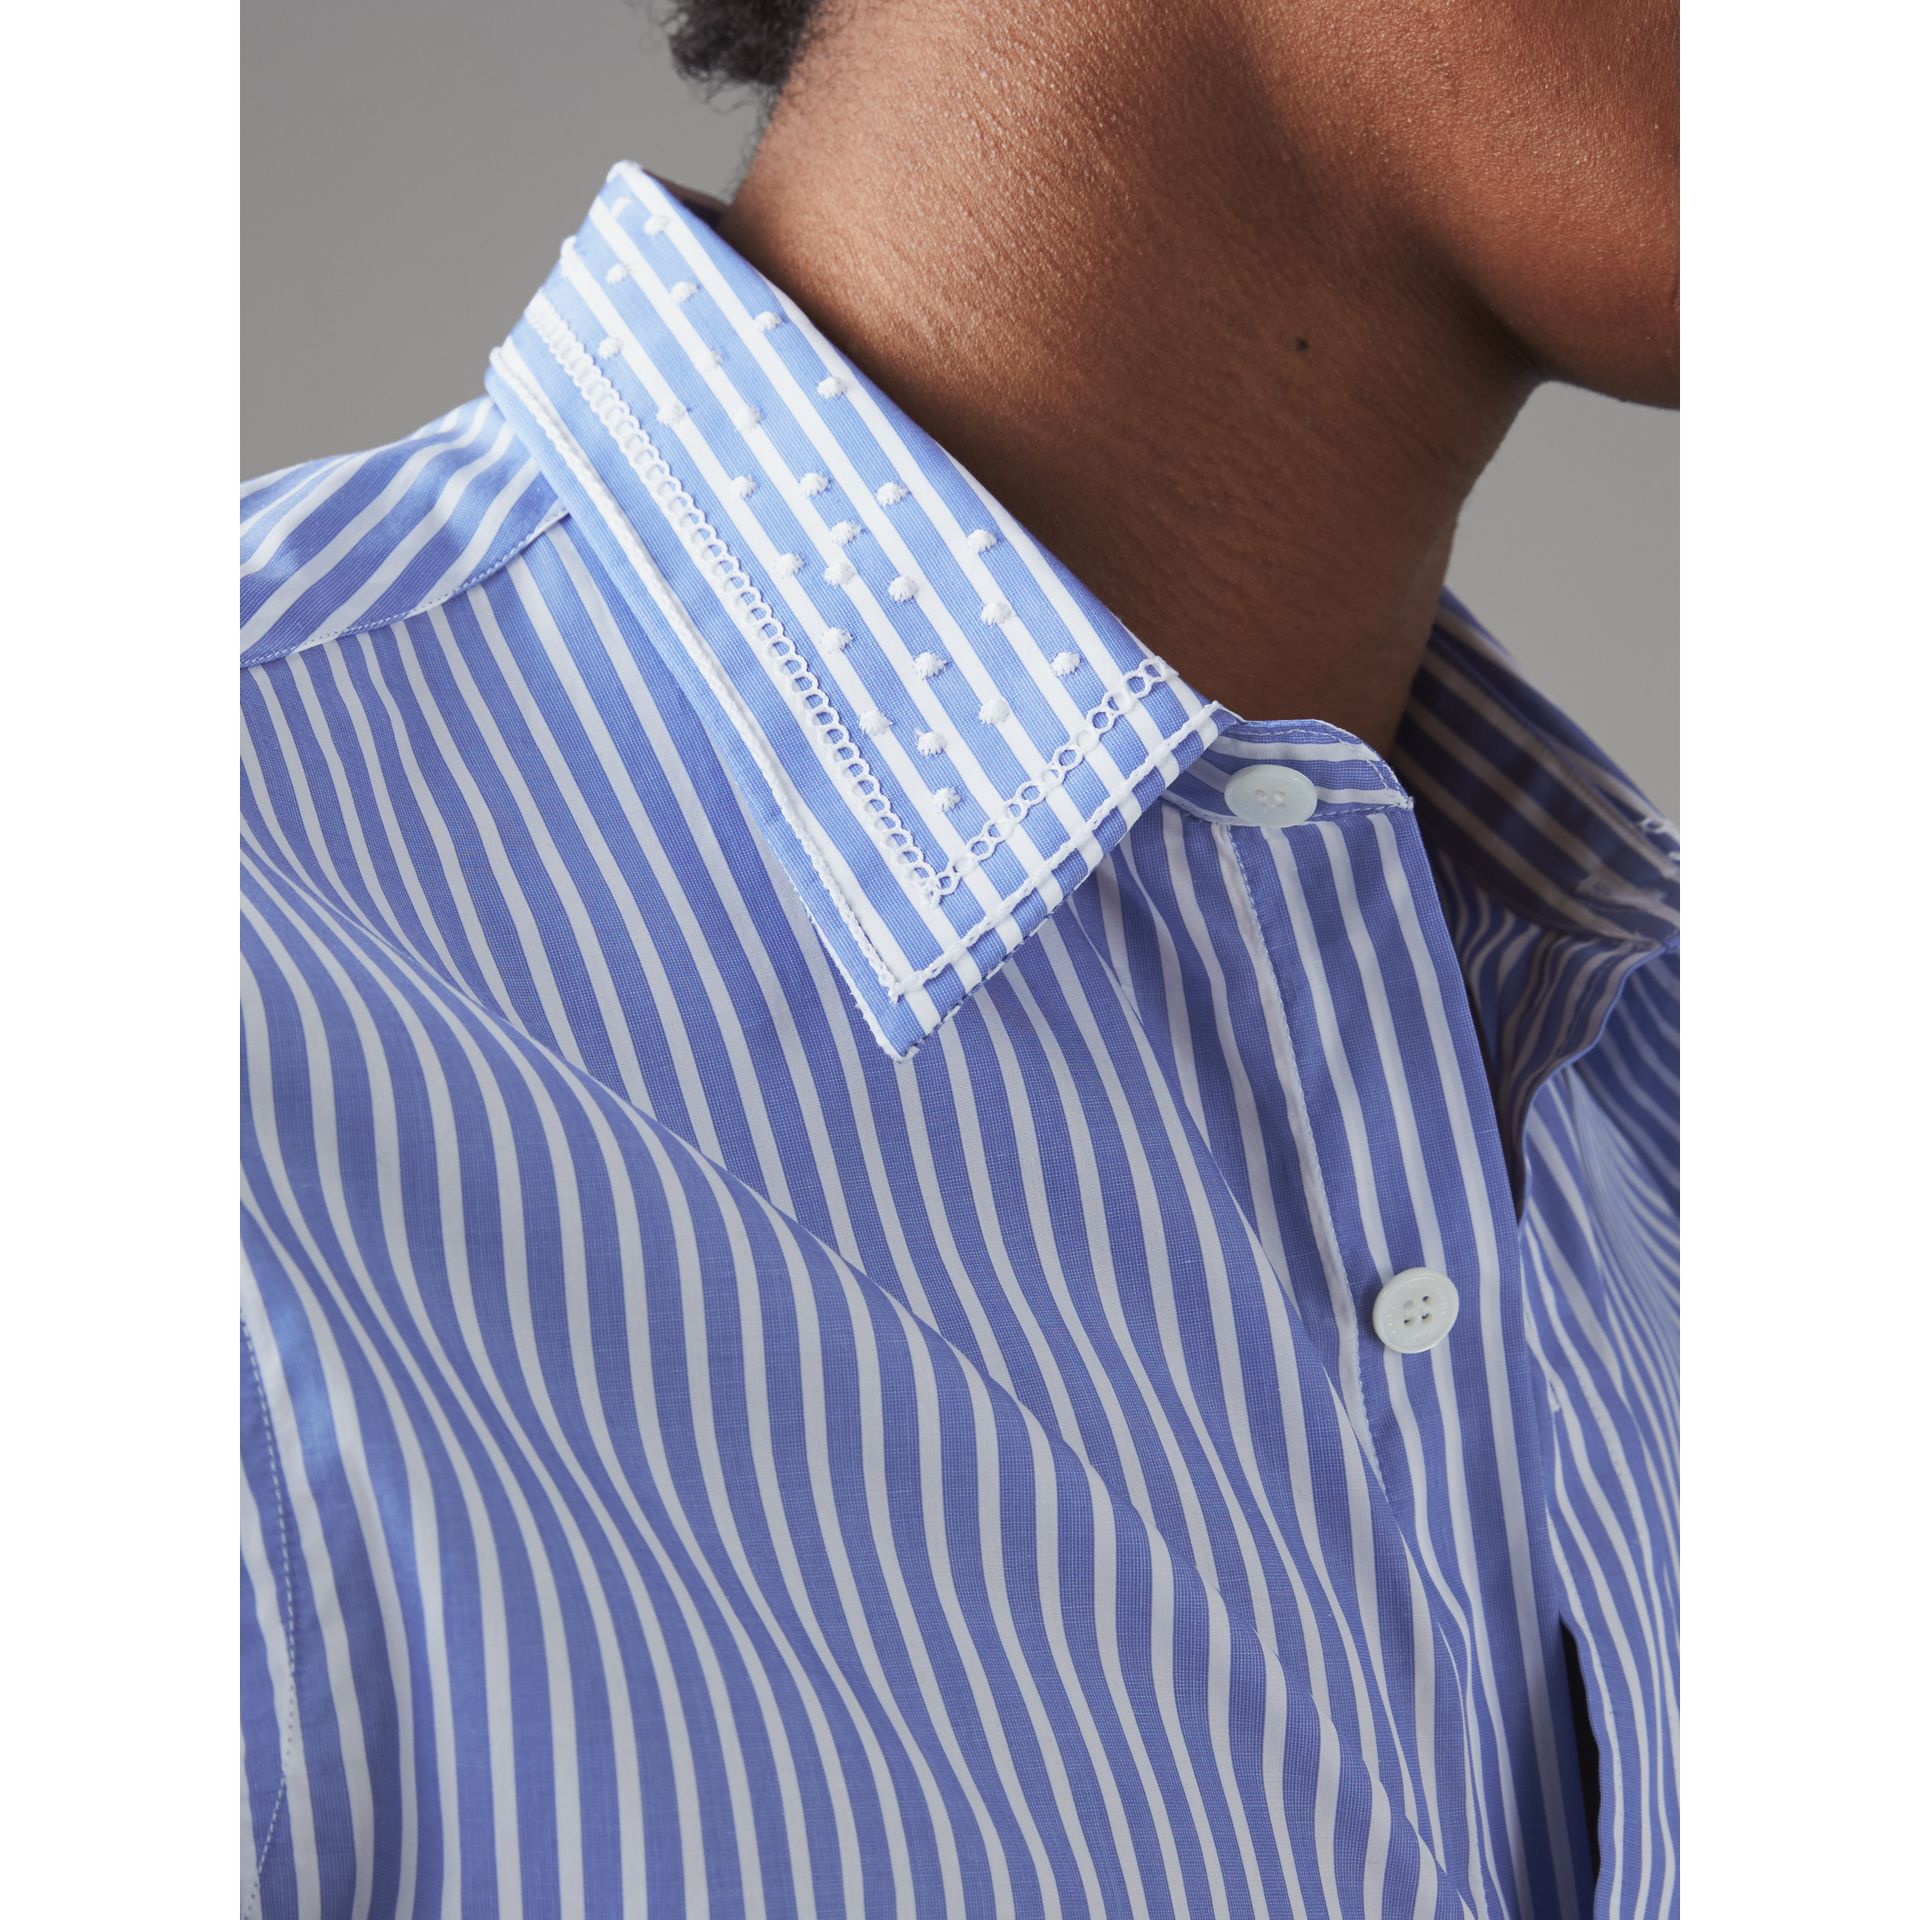 Embroidered Collar Striped Cotton Shirt in Mid Blue - Men | Burberry - gallery image 1